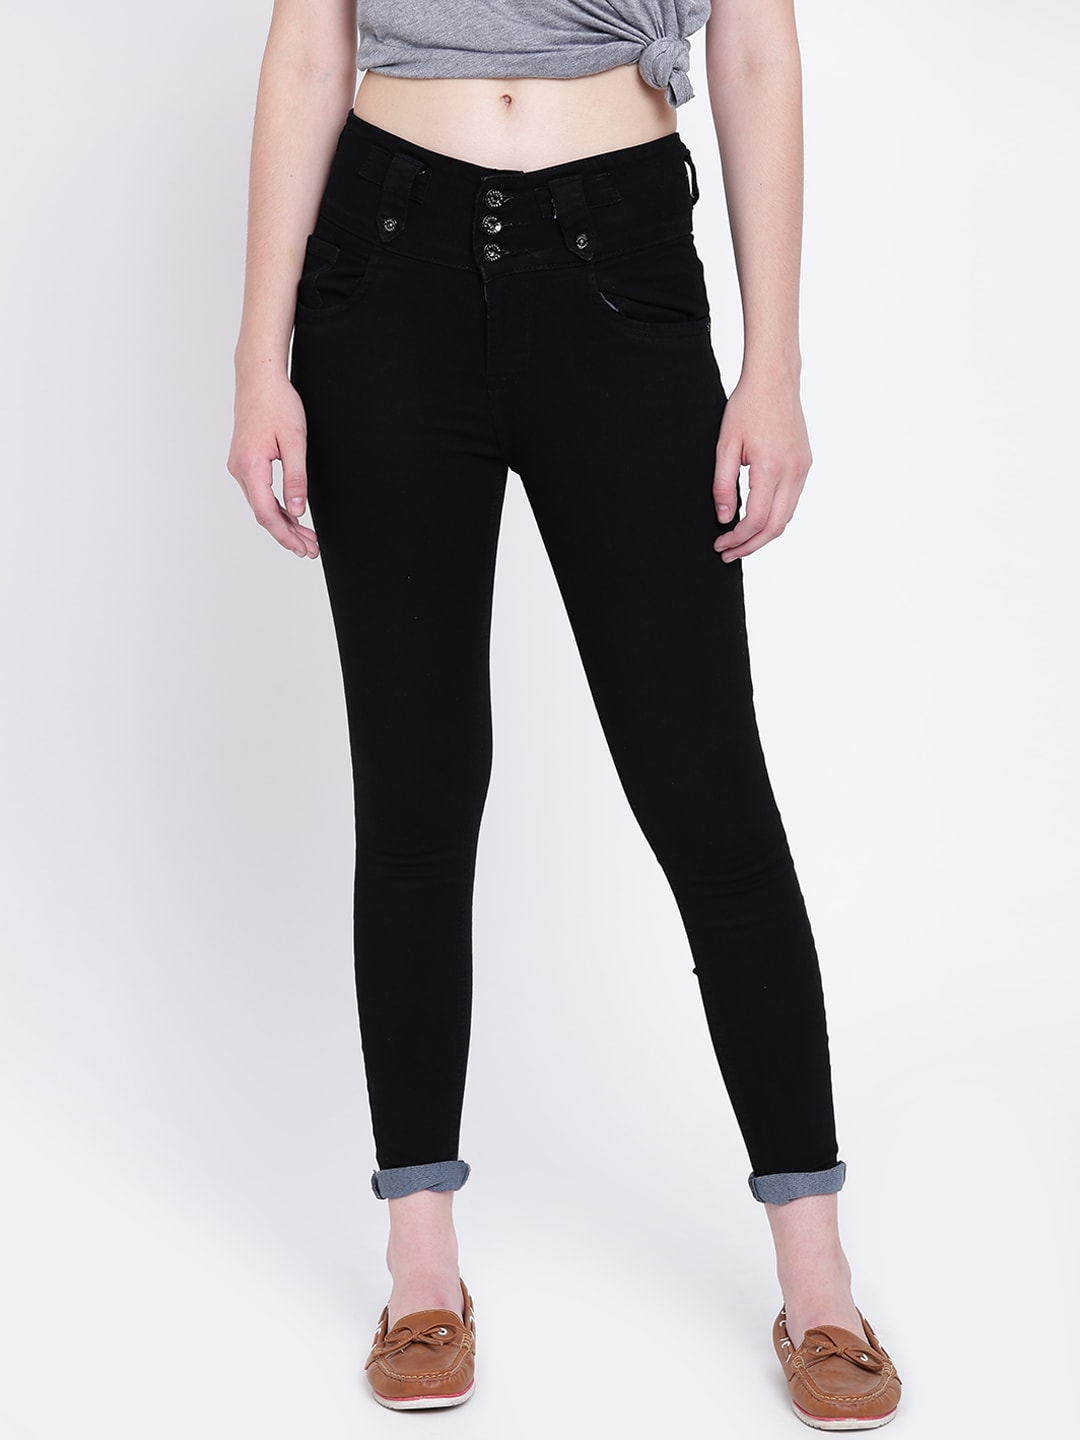 5b93dba4c69bc Jeans for Women - Buy Womens Jeans Online in India